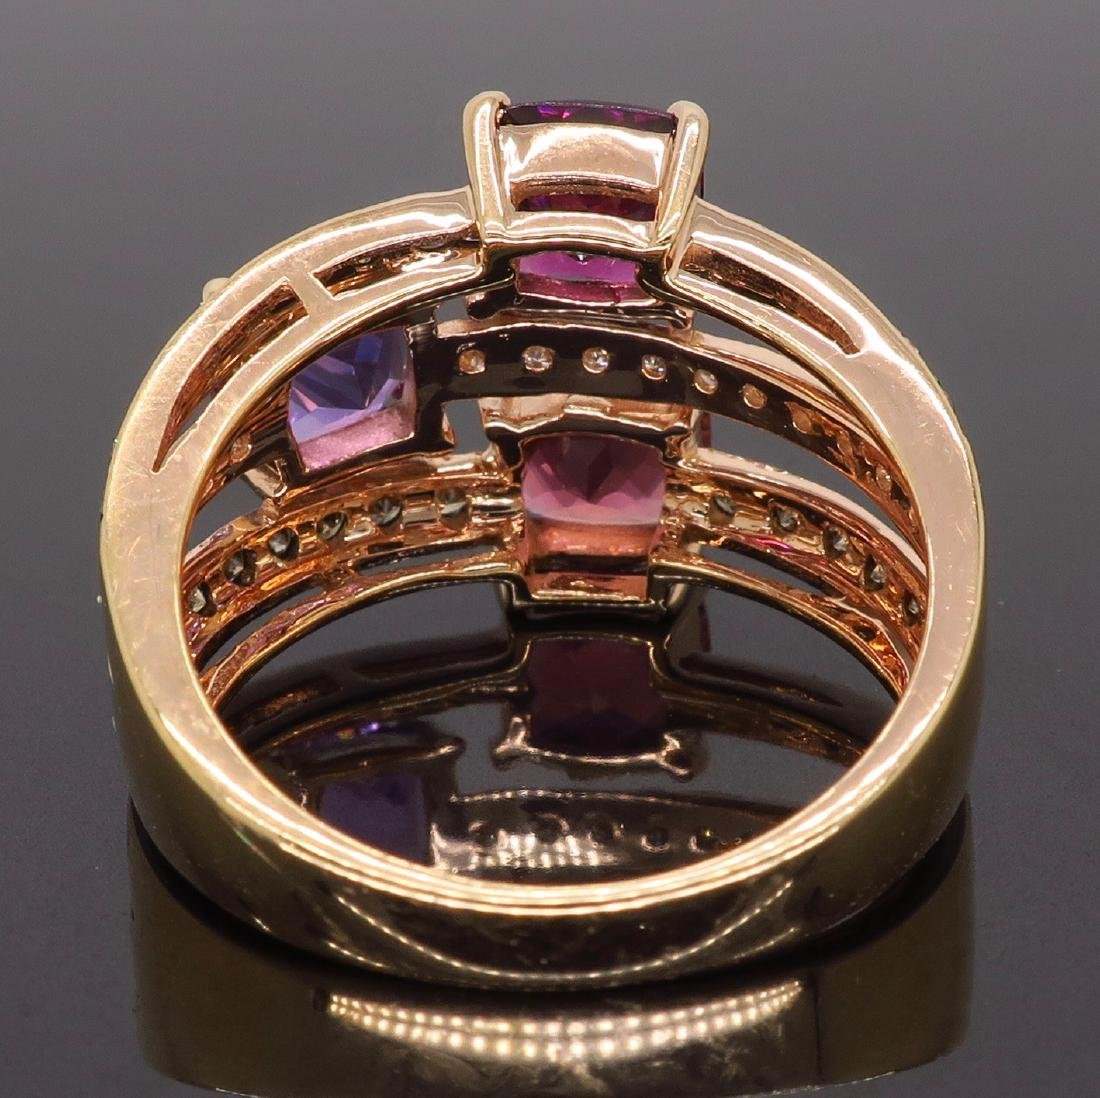 Levian 14KT Rose Gold Colored Stones and Diamond Ring - 7